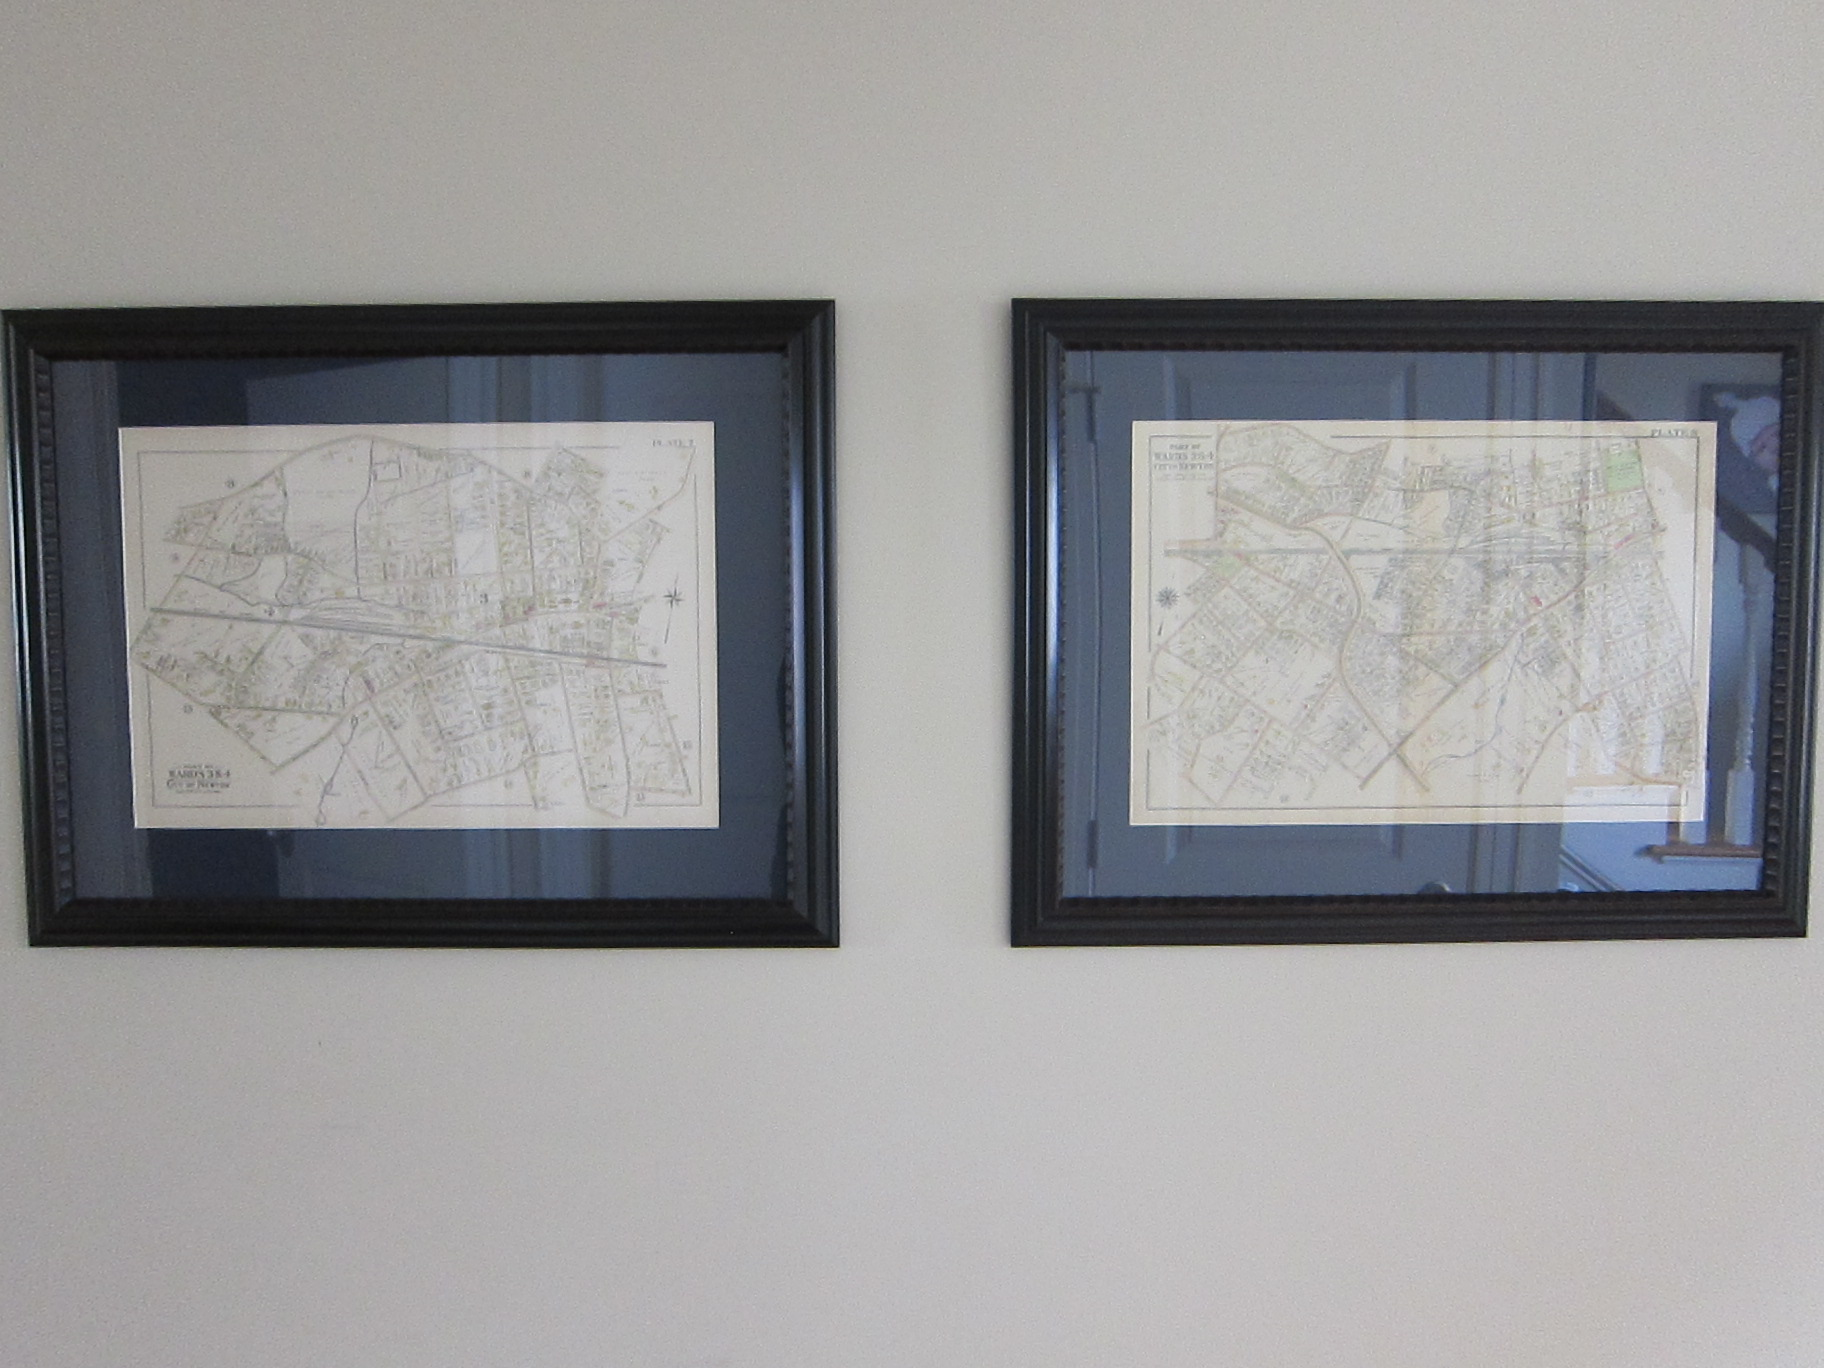 Framed Antique Maps of Auburndale, MA